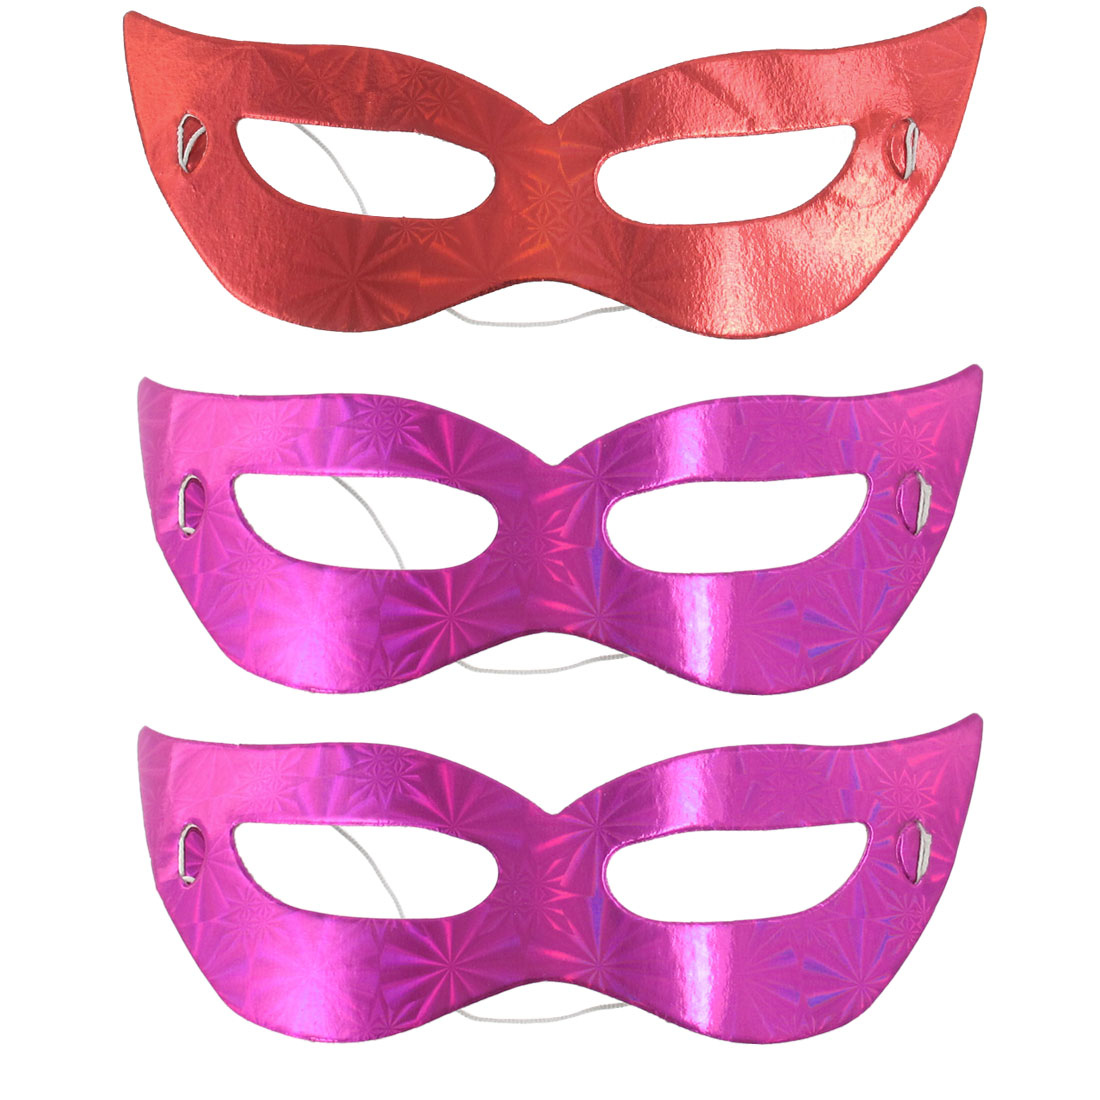 Masquerade Costume Party Fancy Dress Self Tie Band Eye Face Mask Red Fuchsia 3pcs